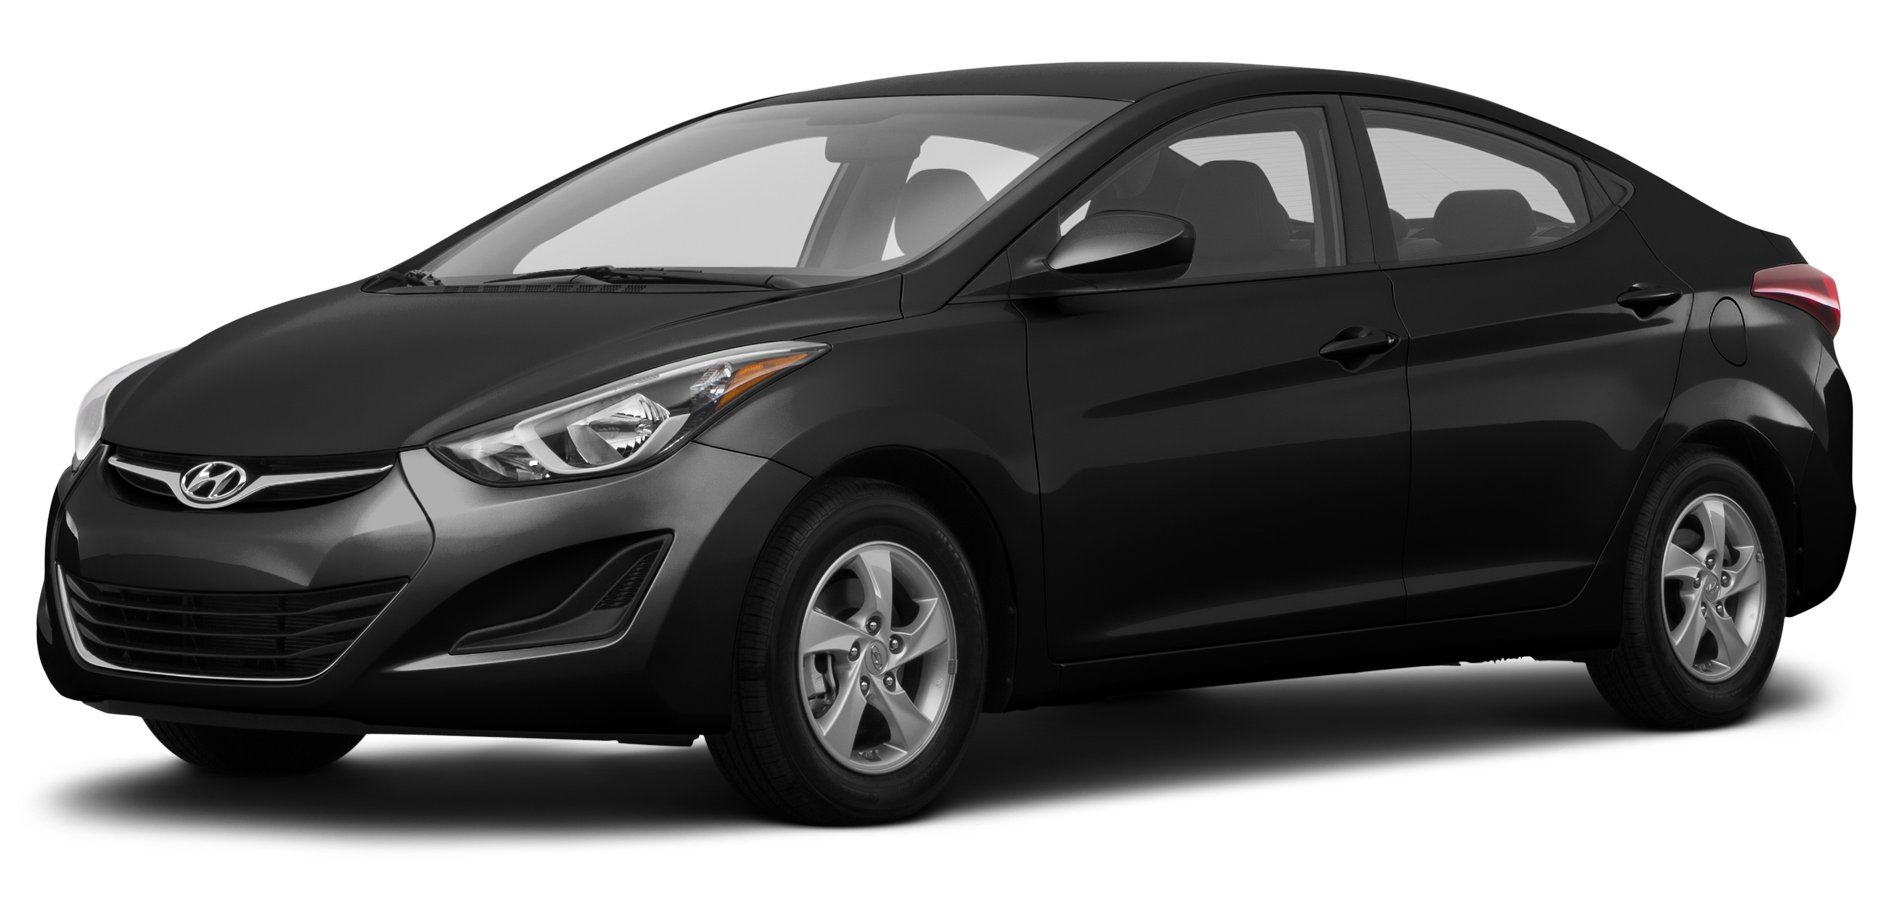 near in price for requests elantra alma st hyundai jean lac gt used